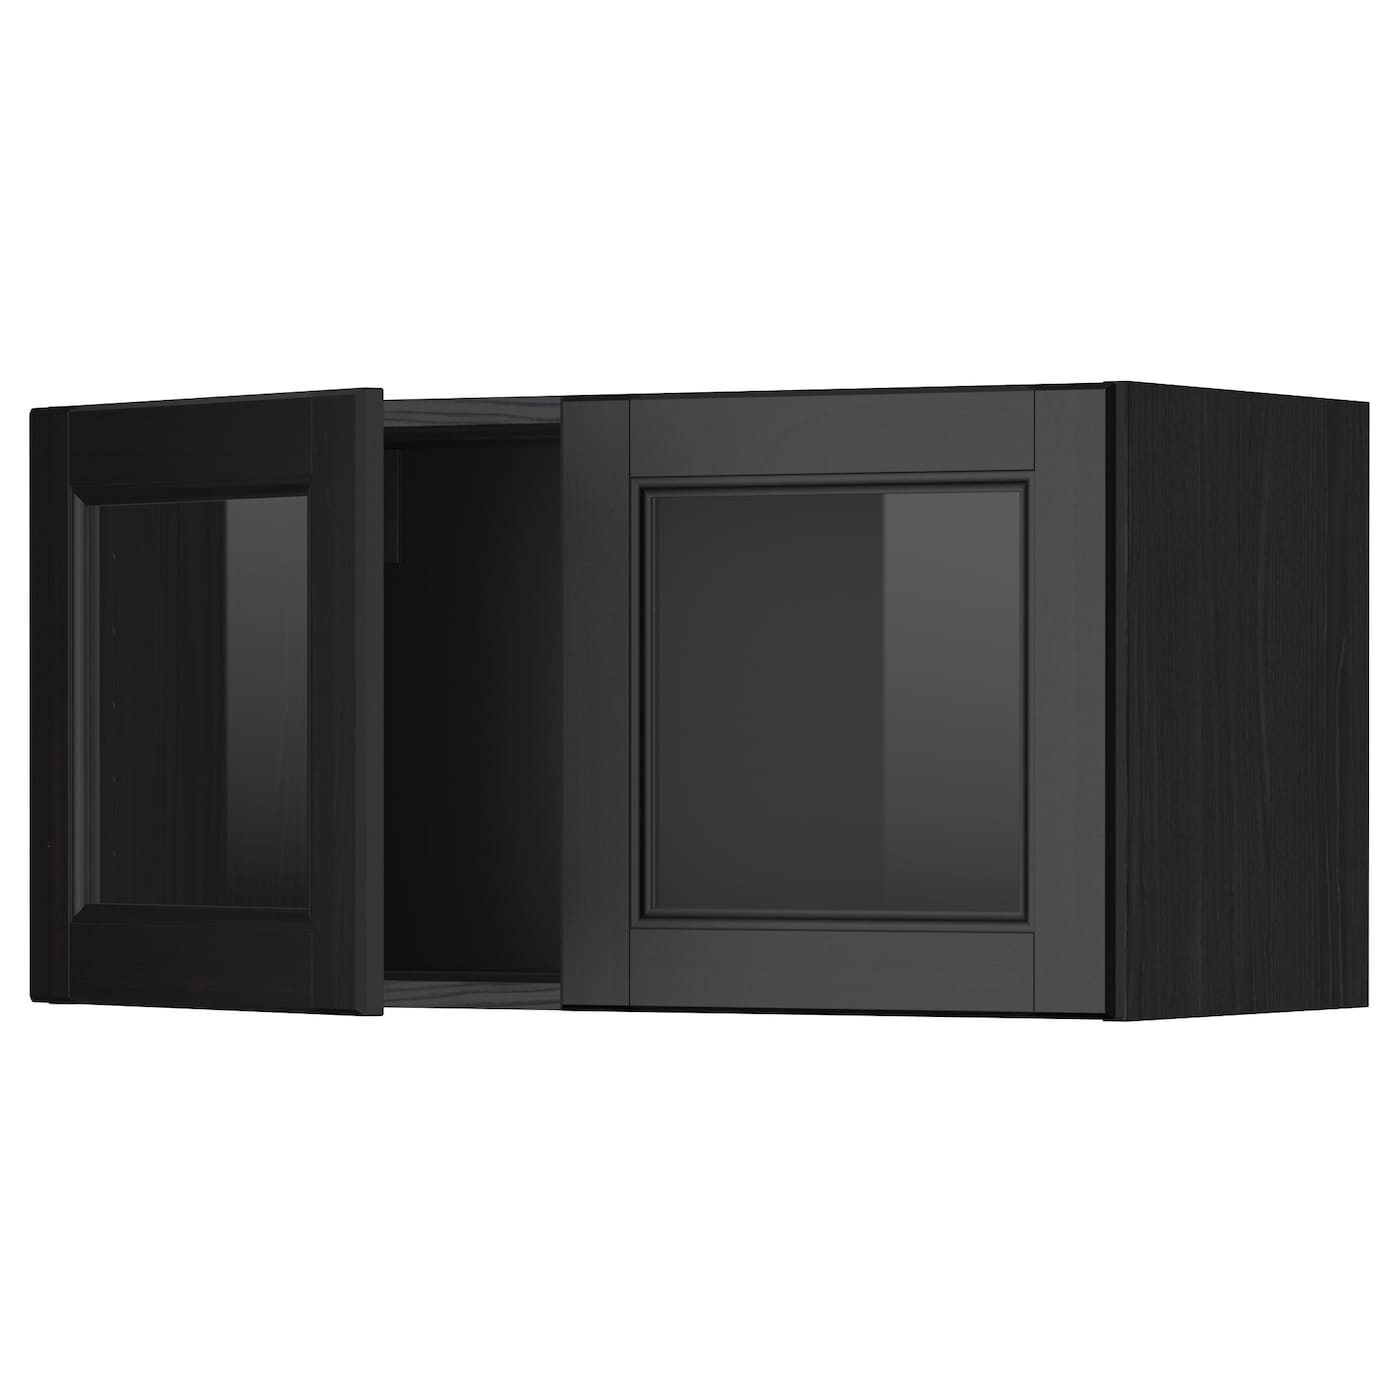 Metod wall cabinet with 2 glass doors black laxarby black for Ikea glass door wall cabinet